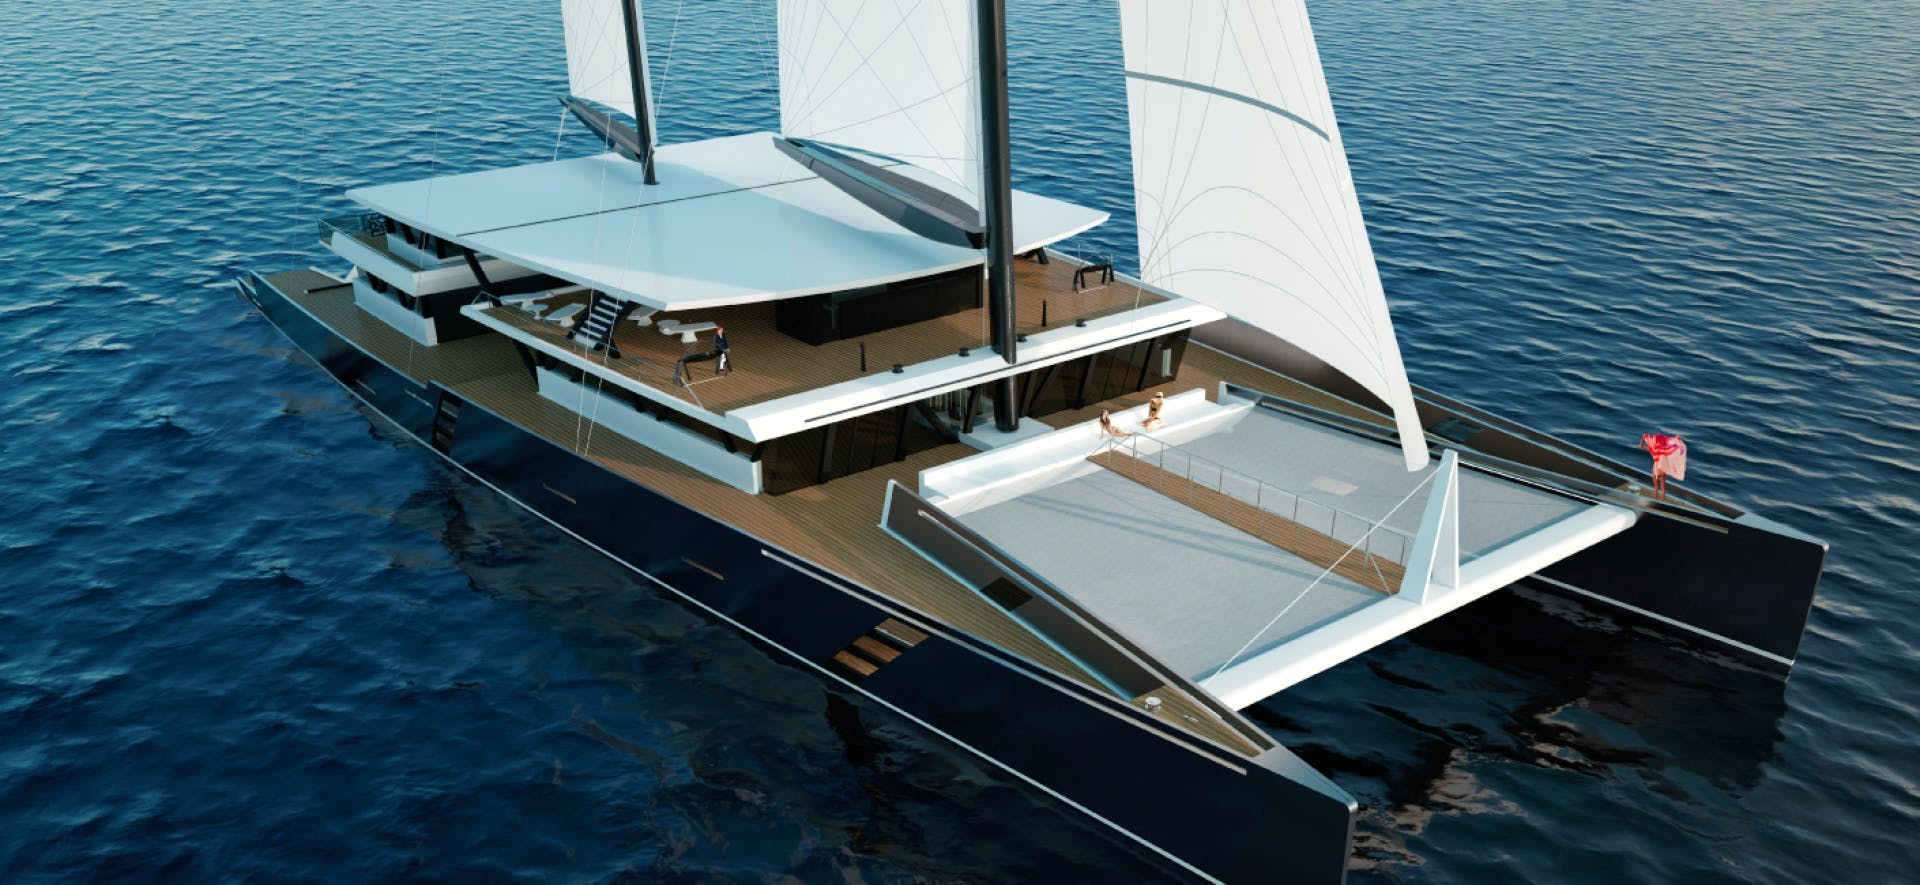 SEA VOYAGER 223 Yacht